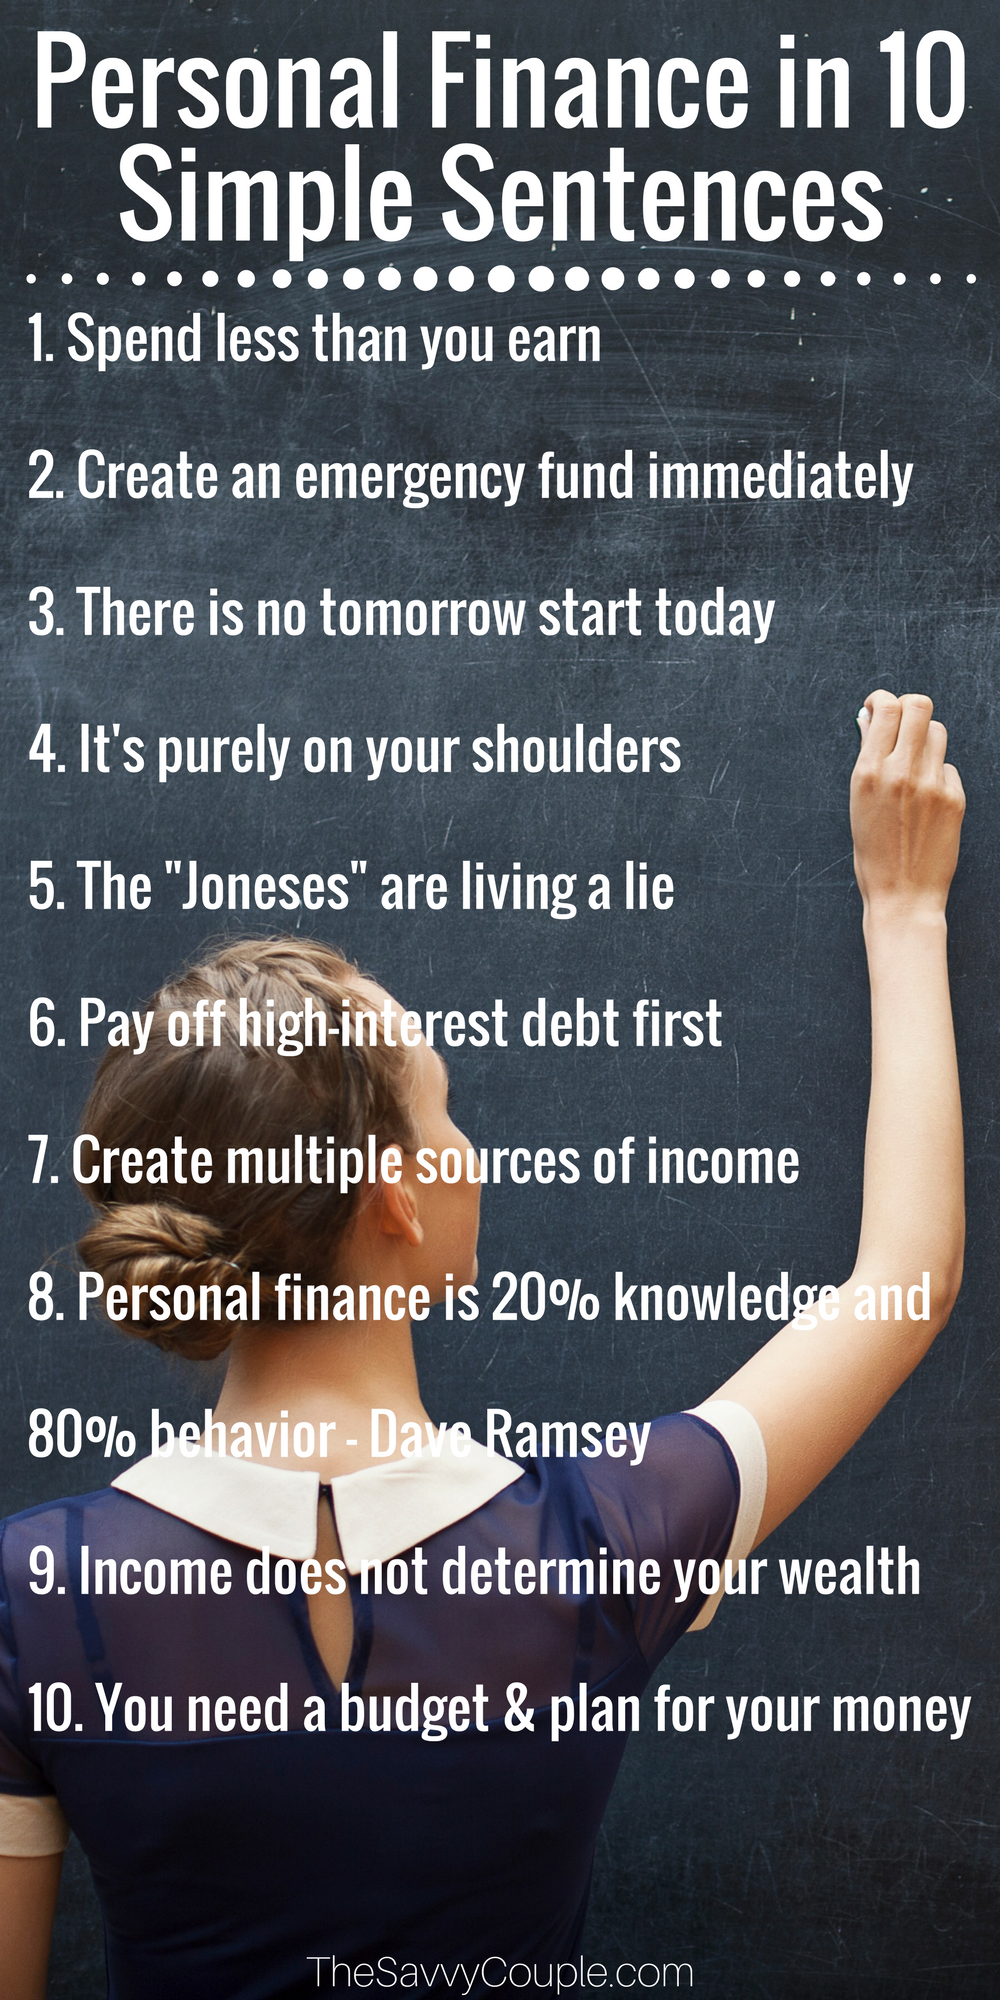 23 Awesome Personal Finance Tips That Will Help Build You